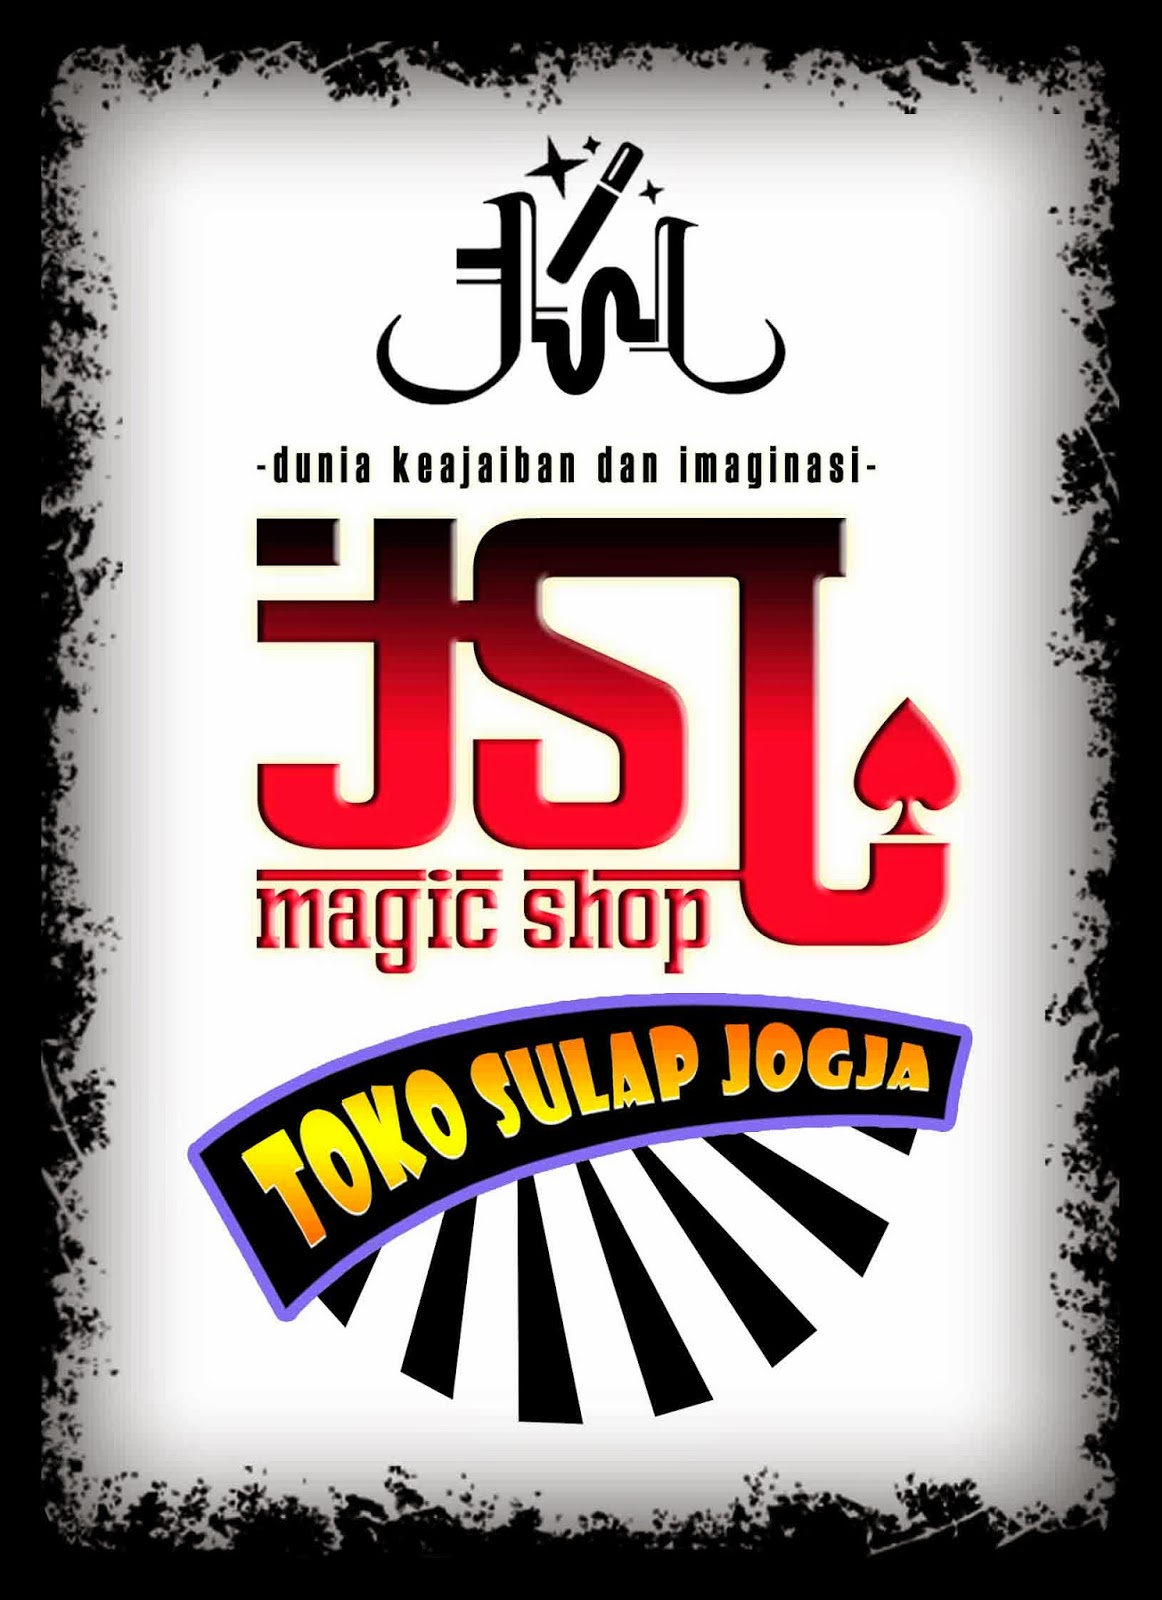 TOKO SULAP JOGJA SHARE THE LOVE MAGIC